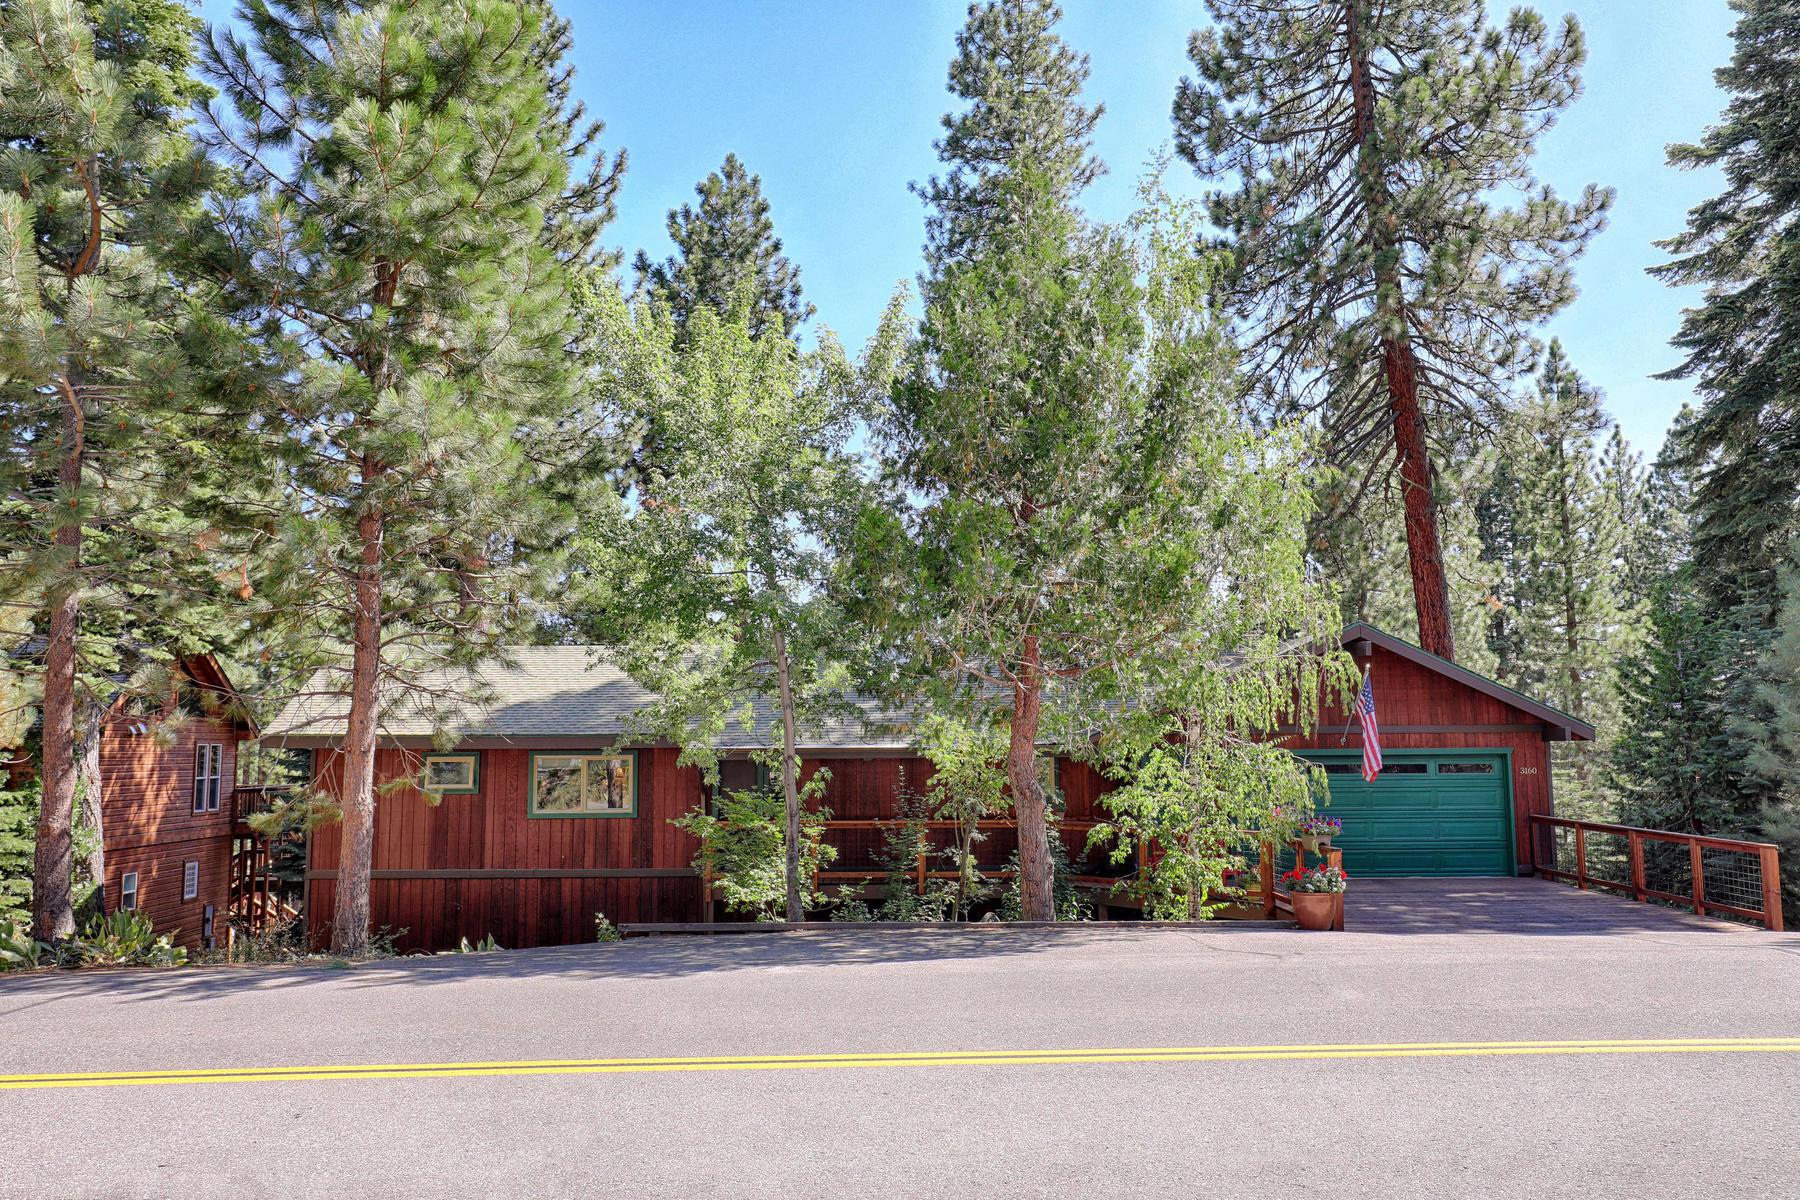 Additional photo for property listing at 3160 Polaris Rd, Tahoe City, CA 96145 3160 Polaris Rd Tahoe City, California 96145 United States